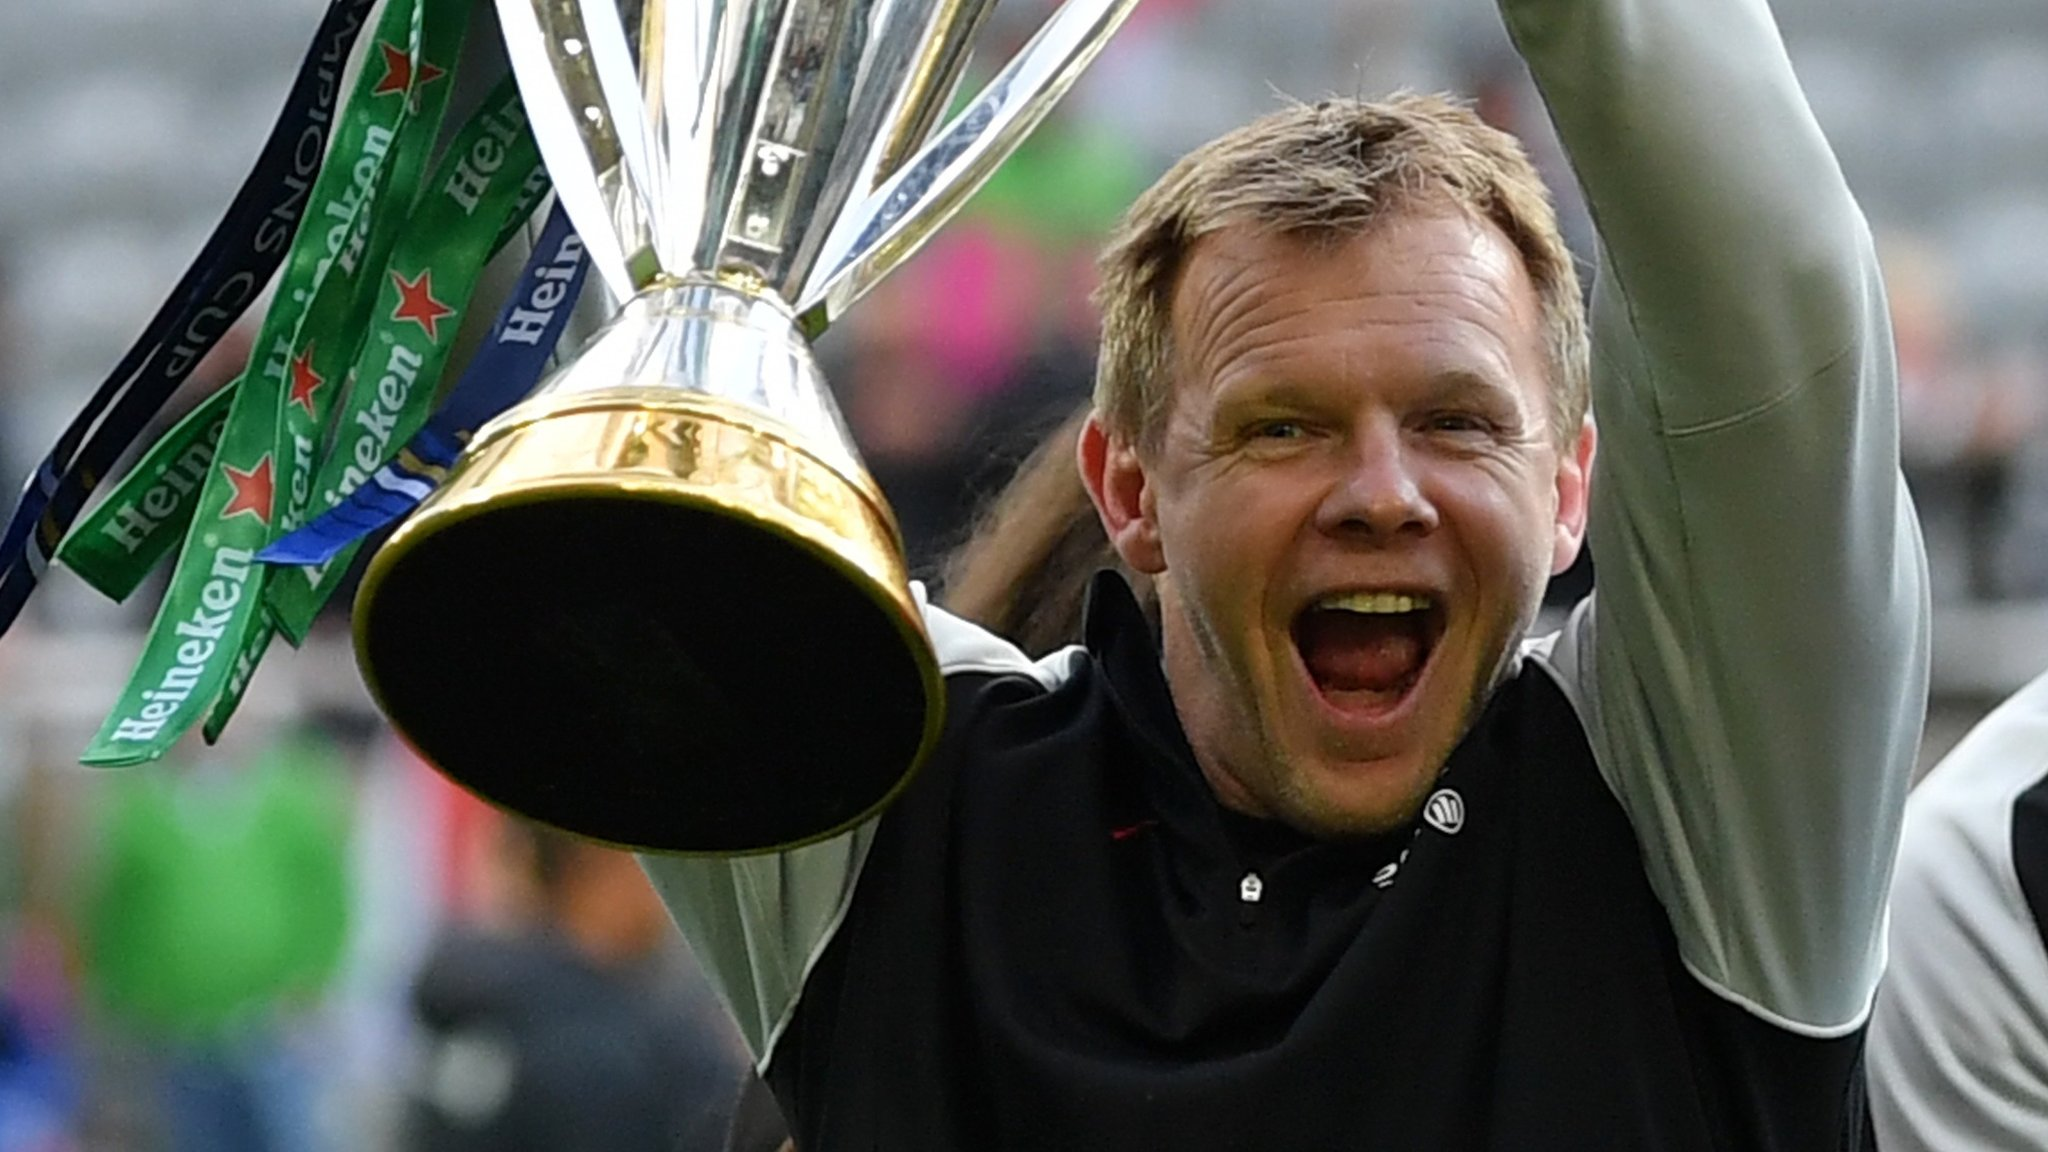 Saracens win Champions Cup: What lies ahead for Mark McCall